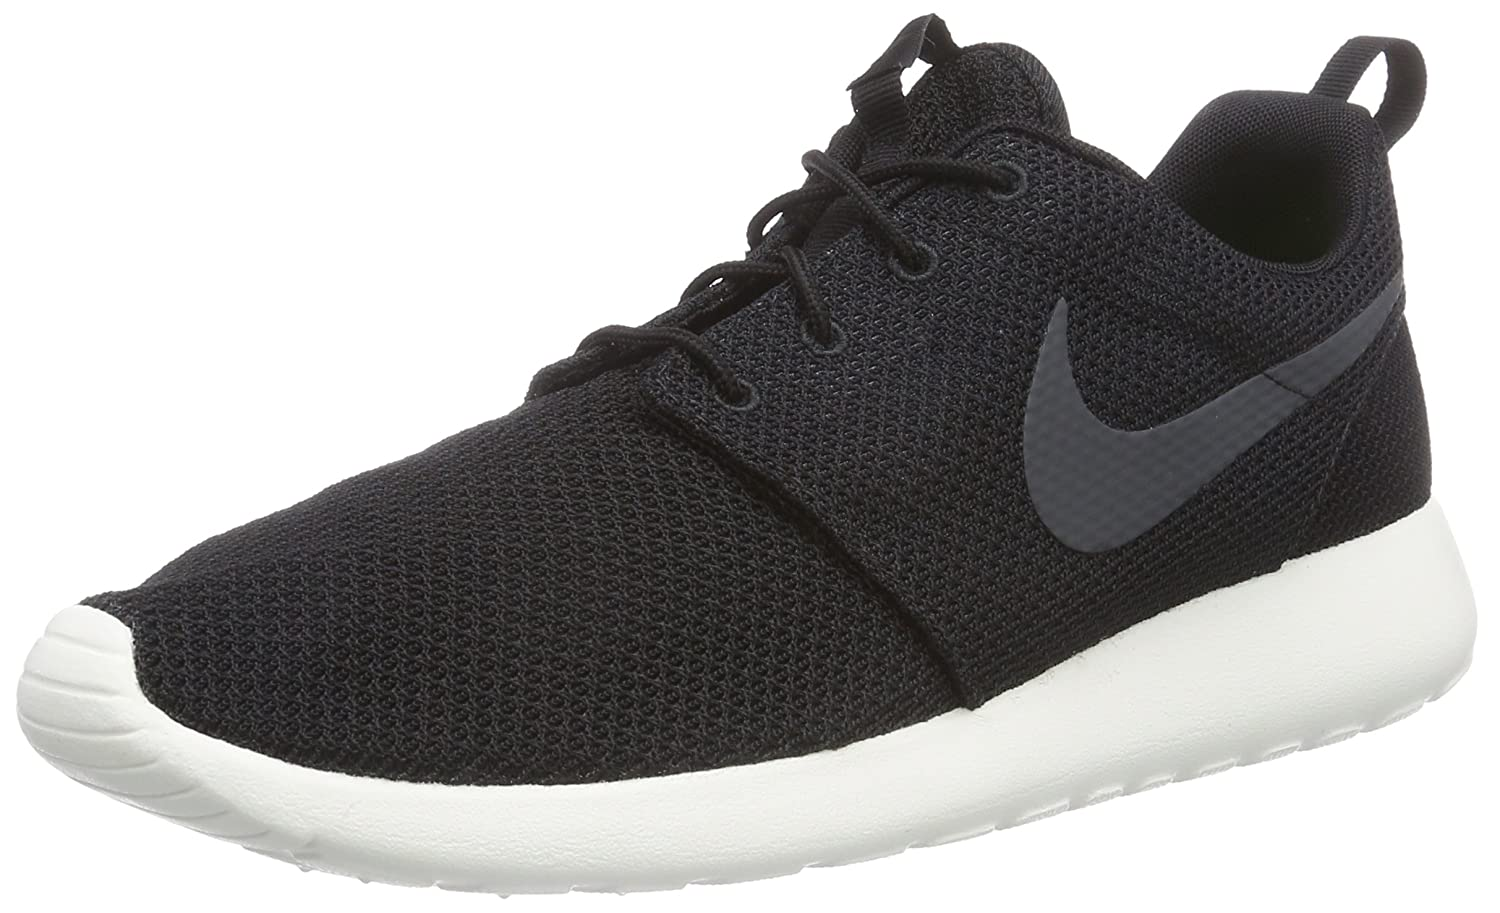 info for 5b276 942e4 Amazon.com  Nike Mens Roshe Run  Fashion Sneakers